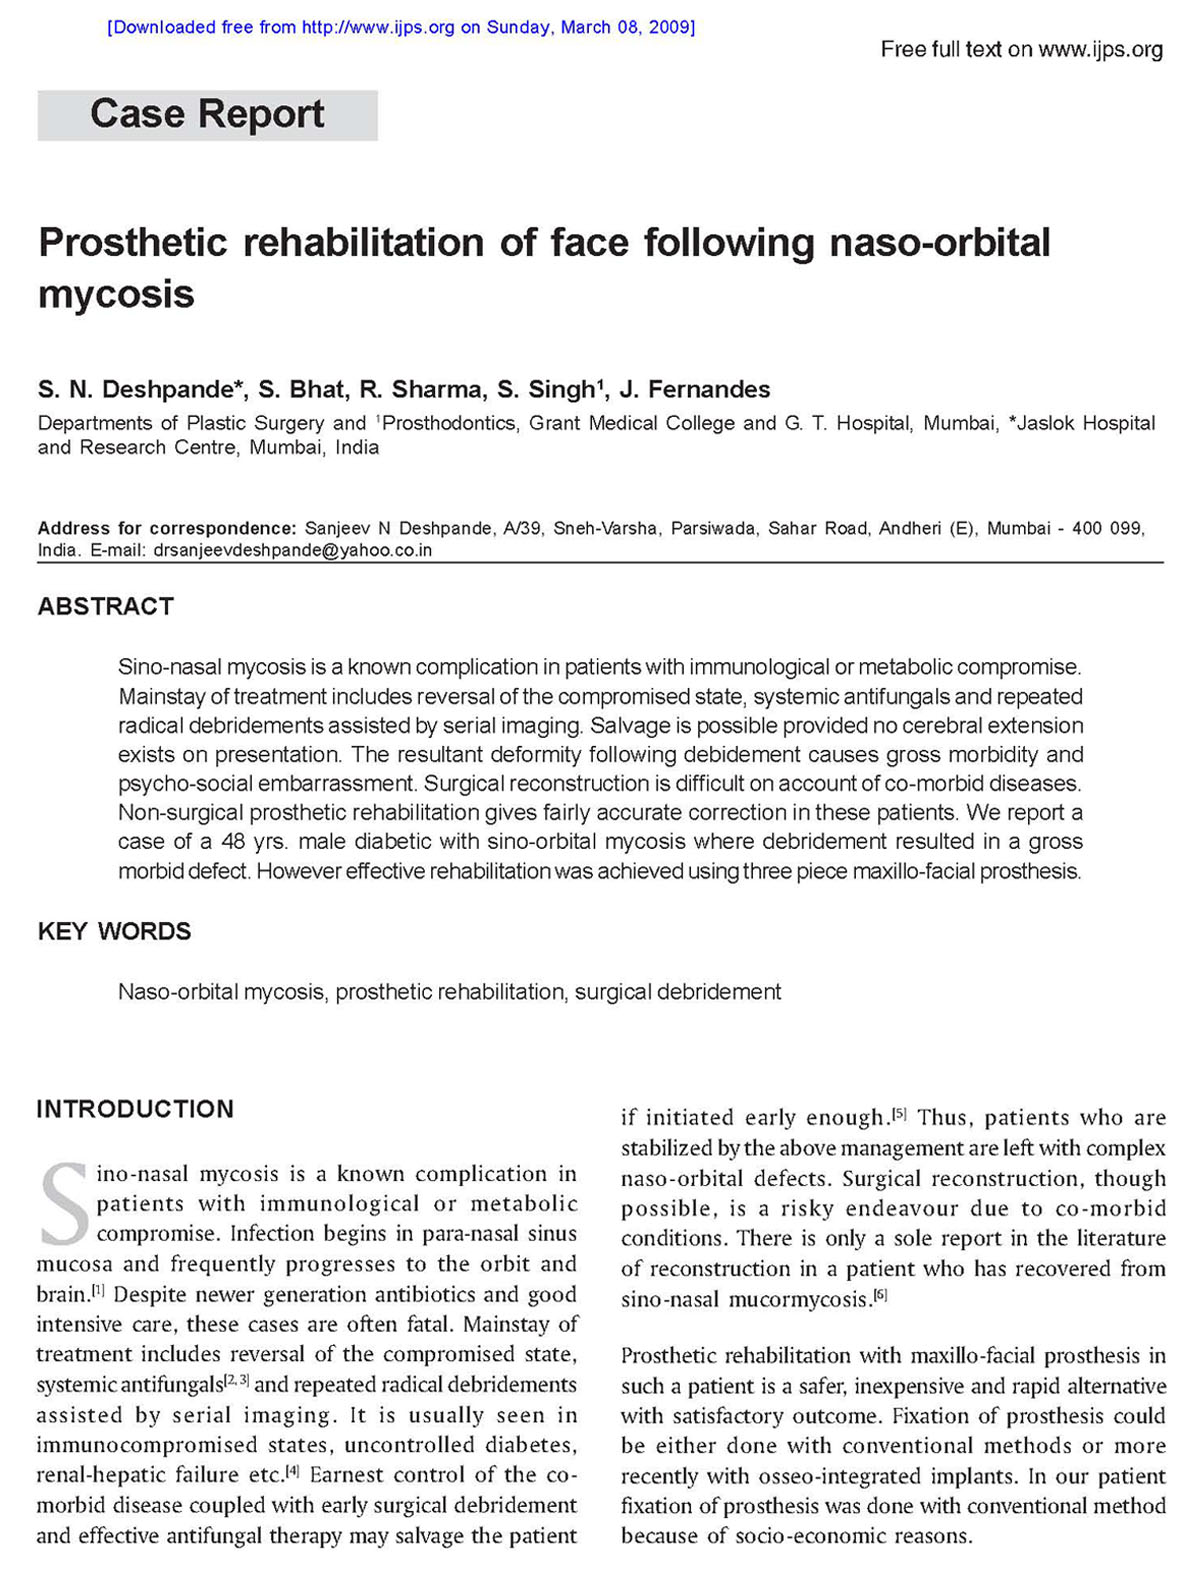 plastic surgeon research paper